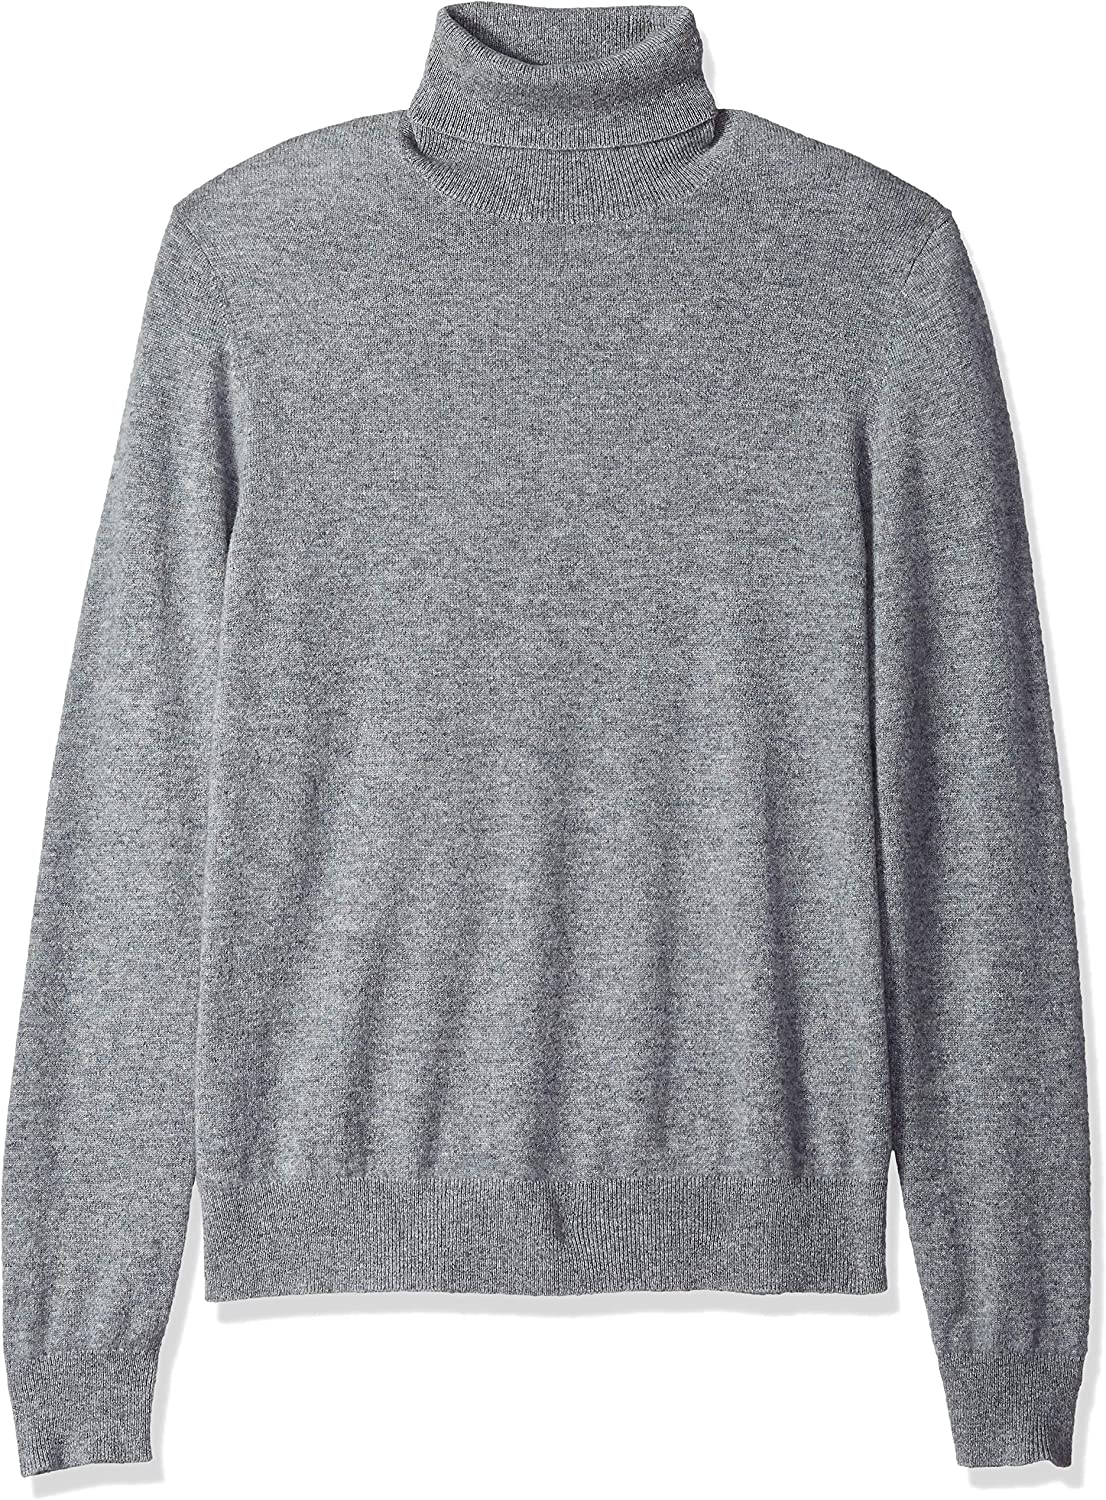 Buttoned Down Mens 100/% Cashmere Turtleneck Sweater Sweater